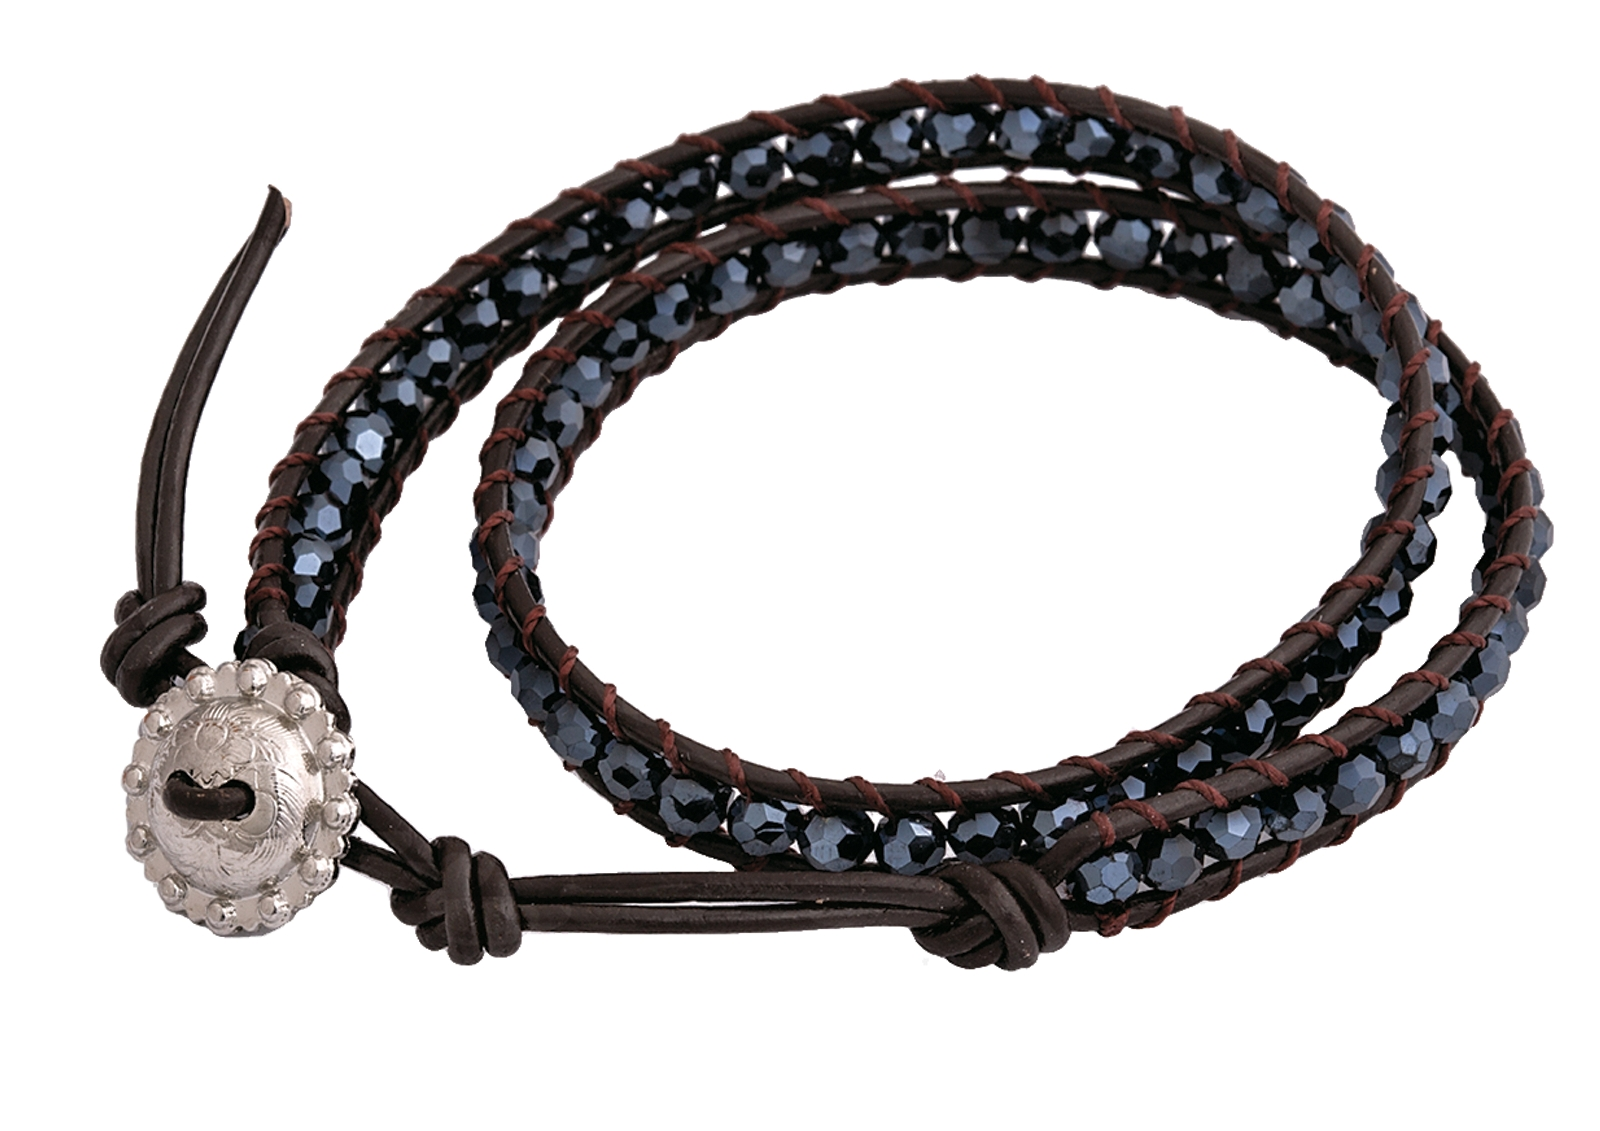 Montana Silversmiths Black Leather Wrap Bracelet with Black Crystal Beads